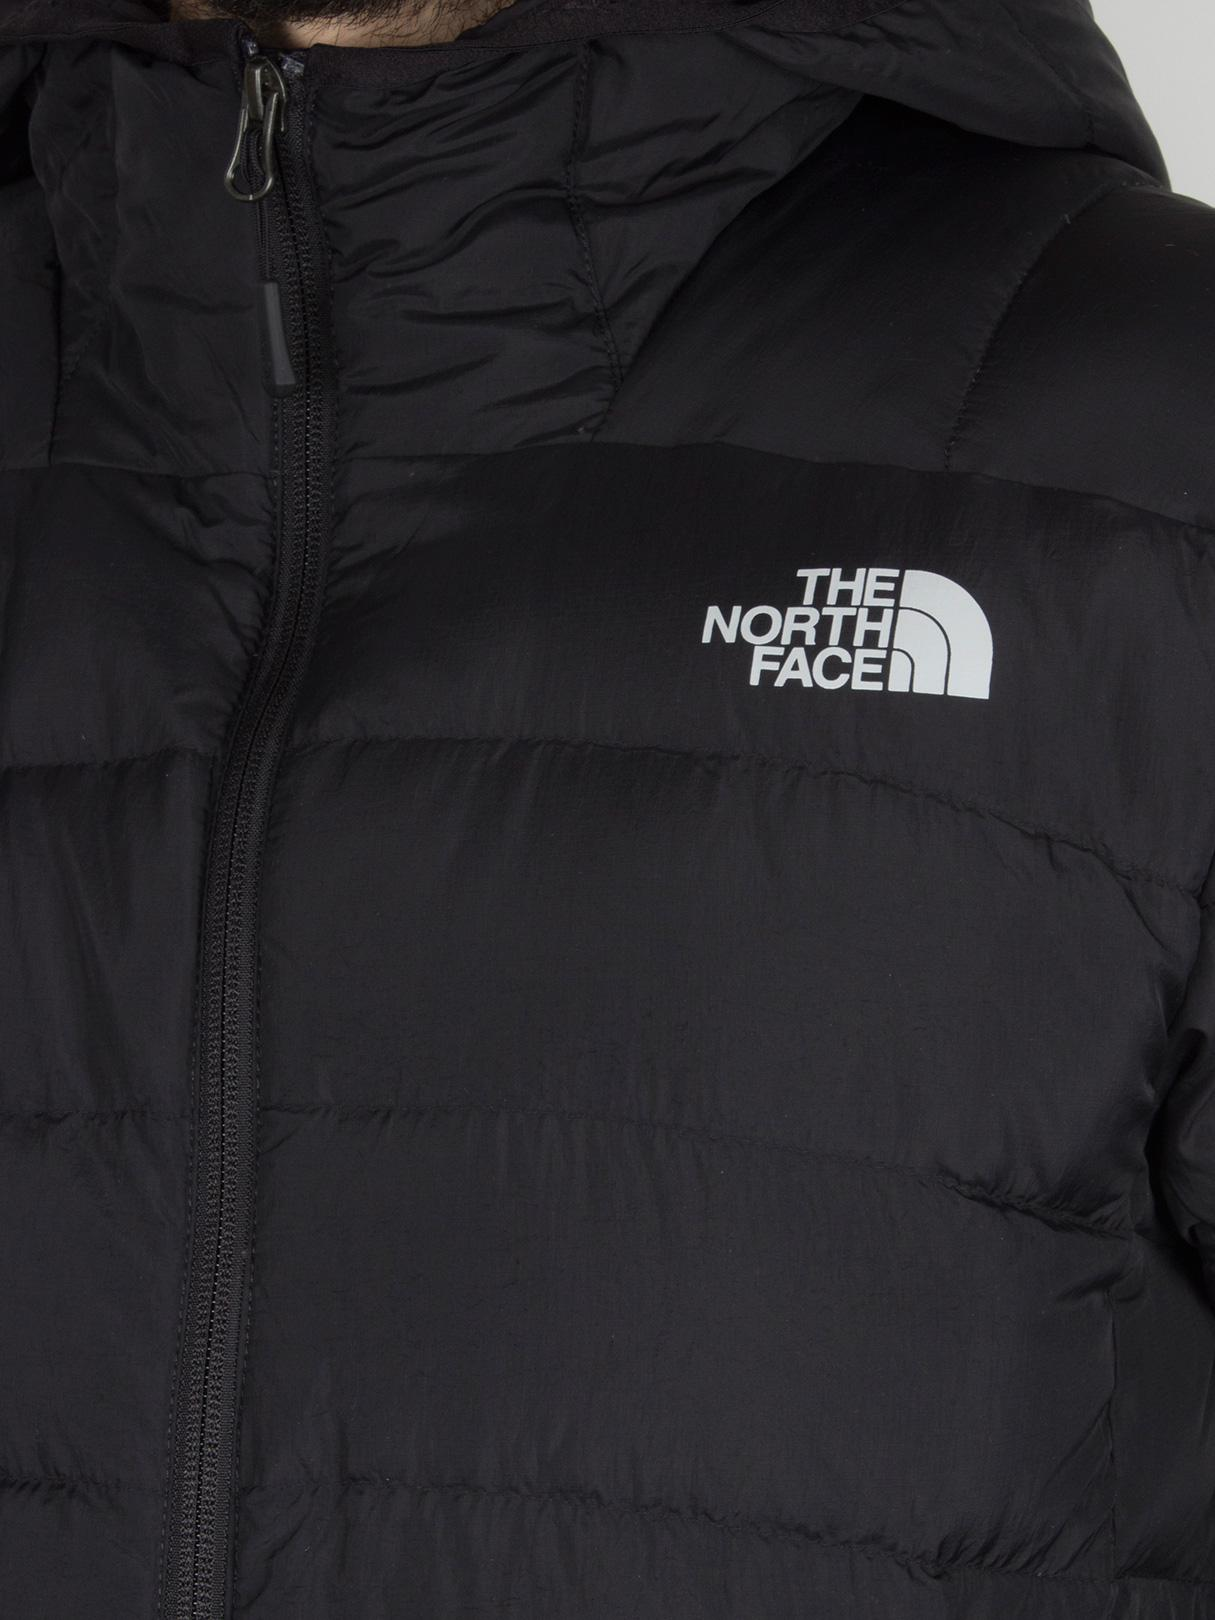 The North Face - Black Paz Hooded Logo Puffa Jacket for Men - Lyst. View  fullscreen 8142ae049